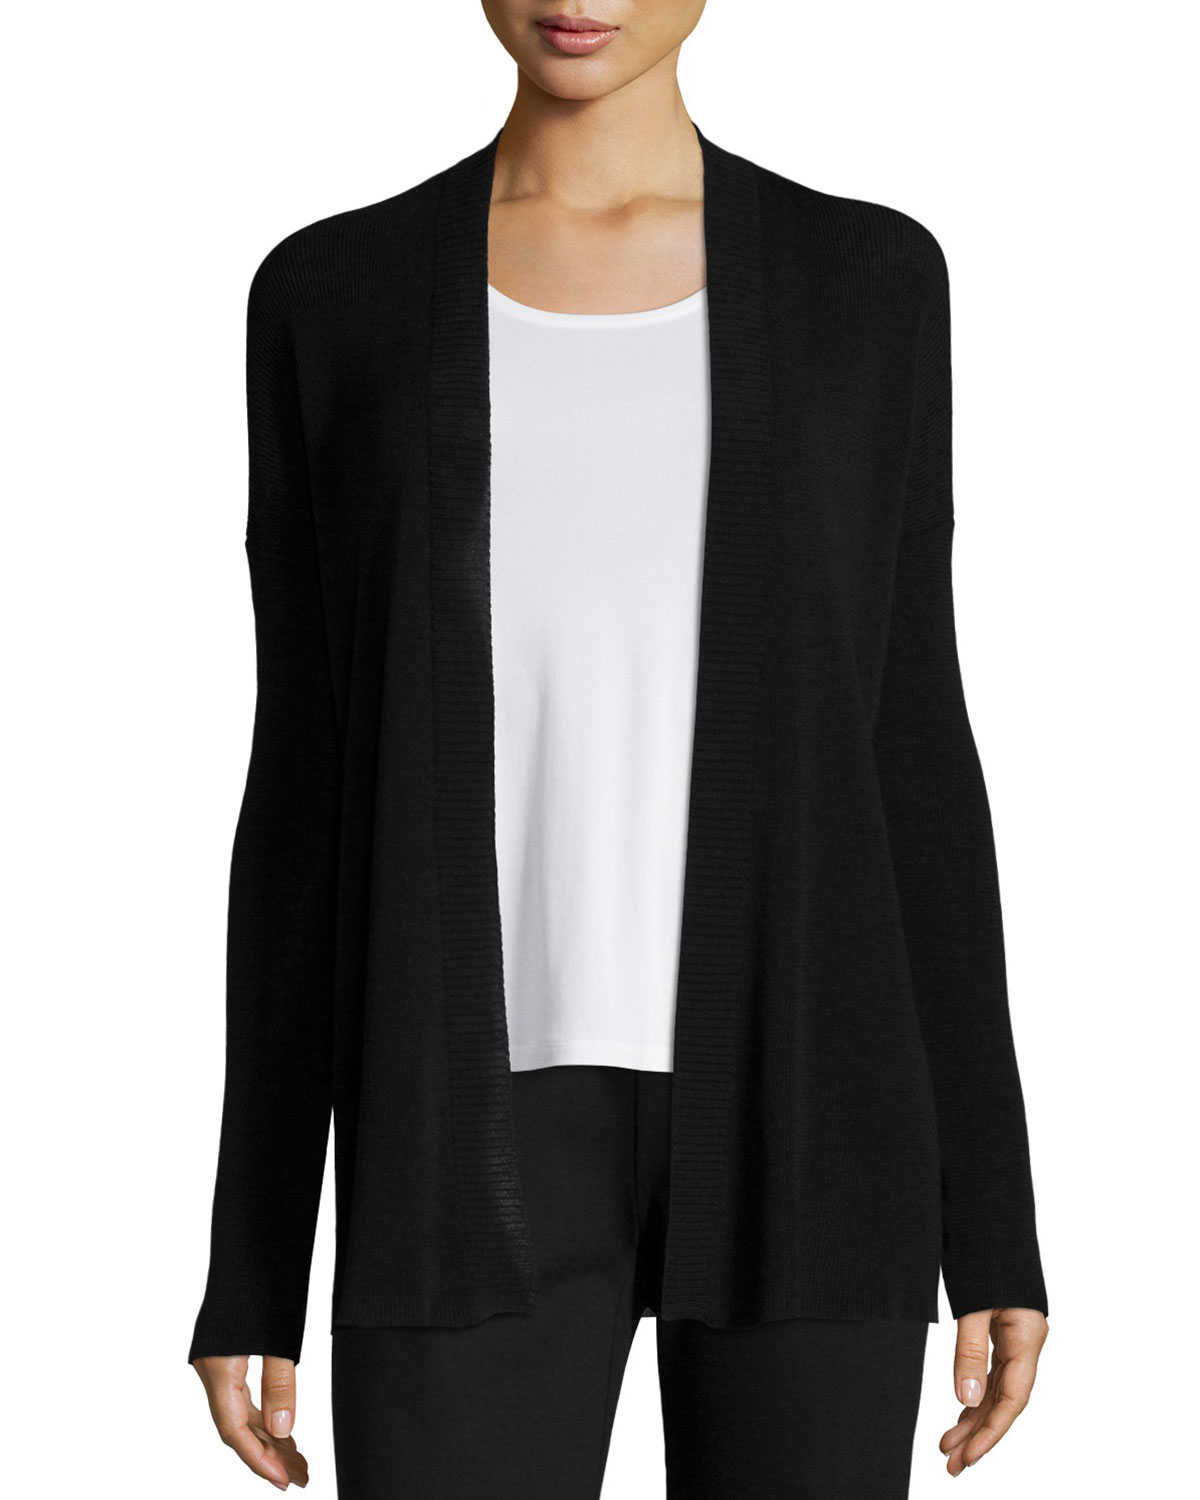 Eileen fisher Straight Fine-knit Open Cardigan in Black | Lyst